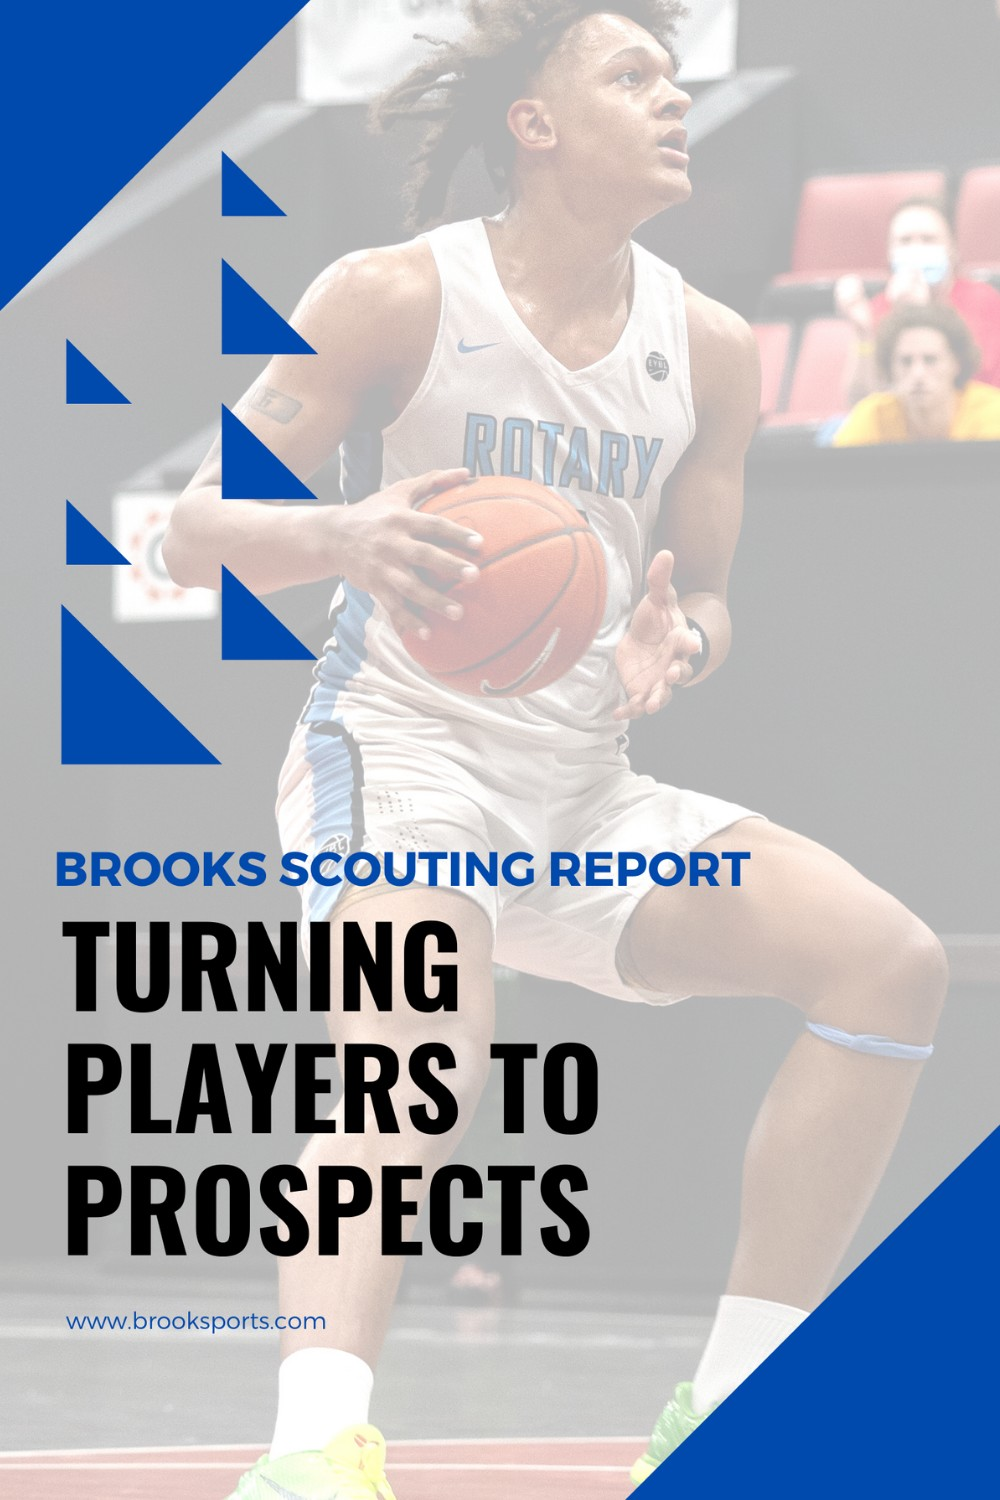 Turning Players to Prospects - Brooks Scouting